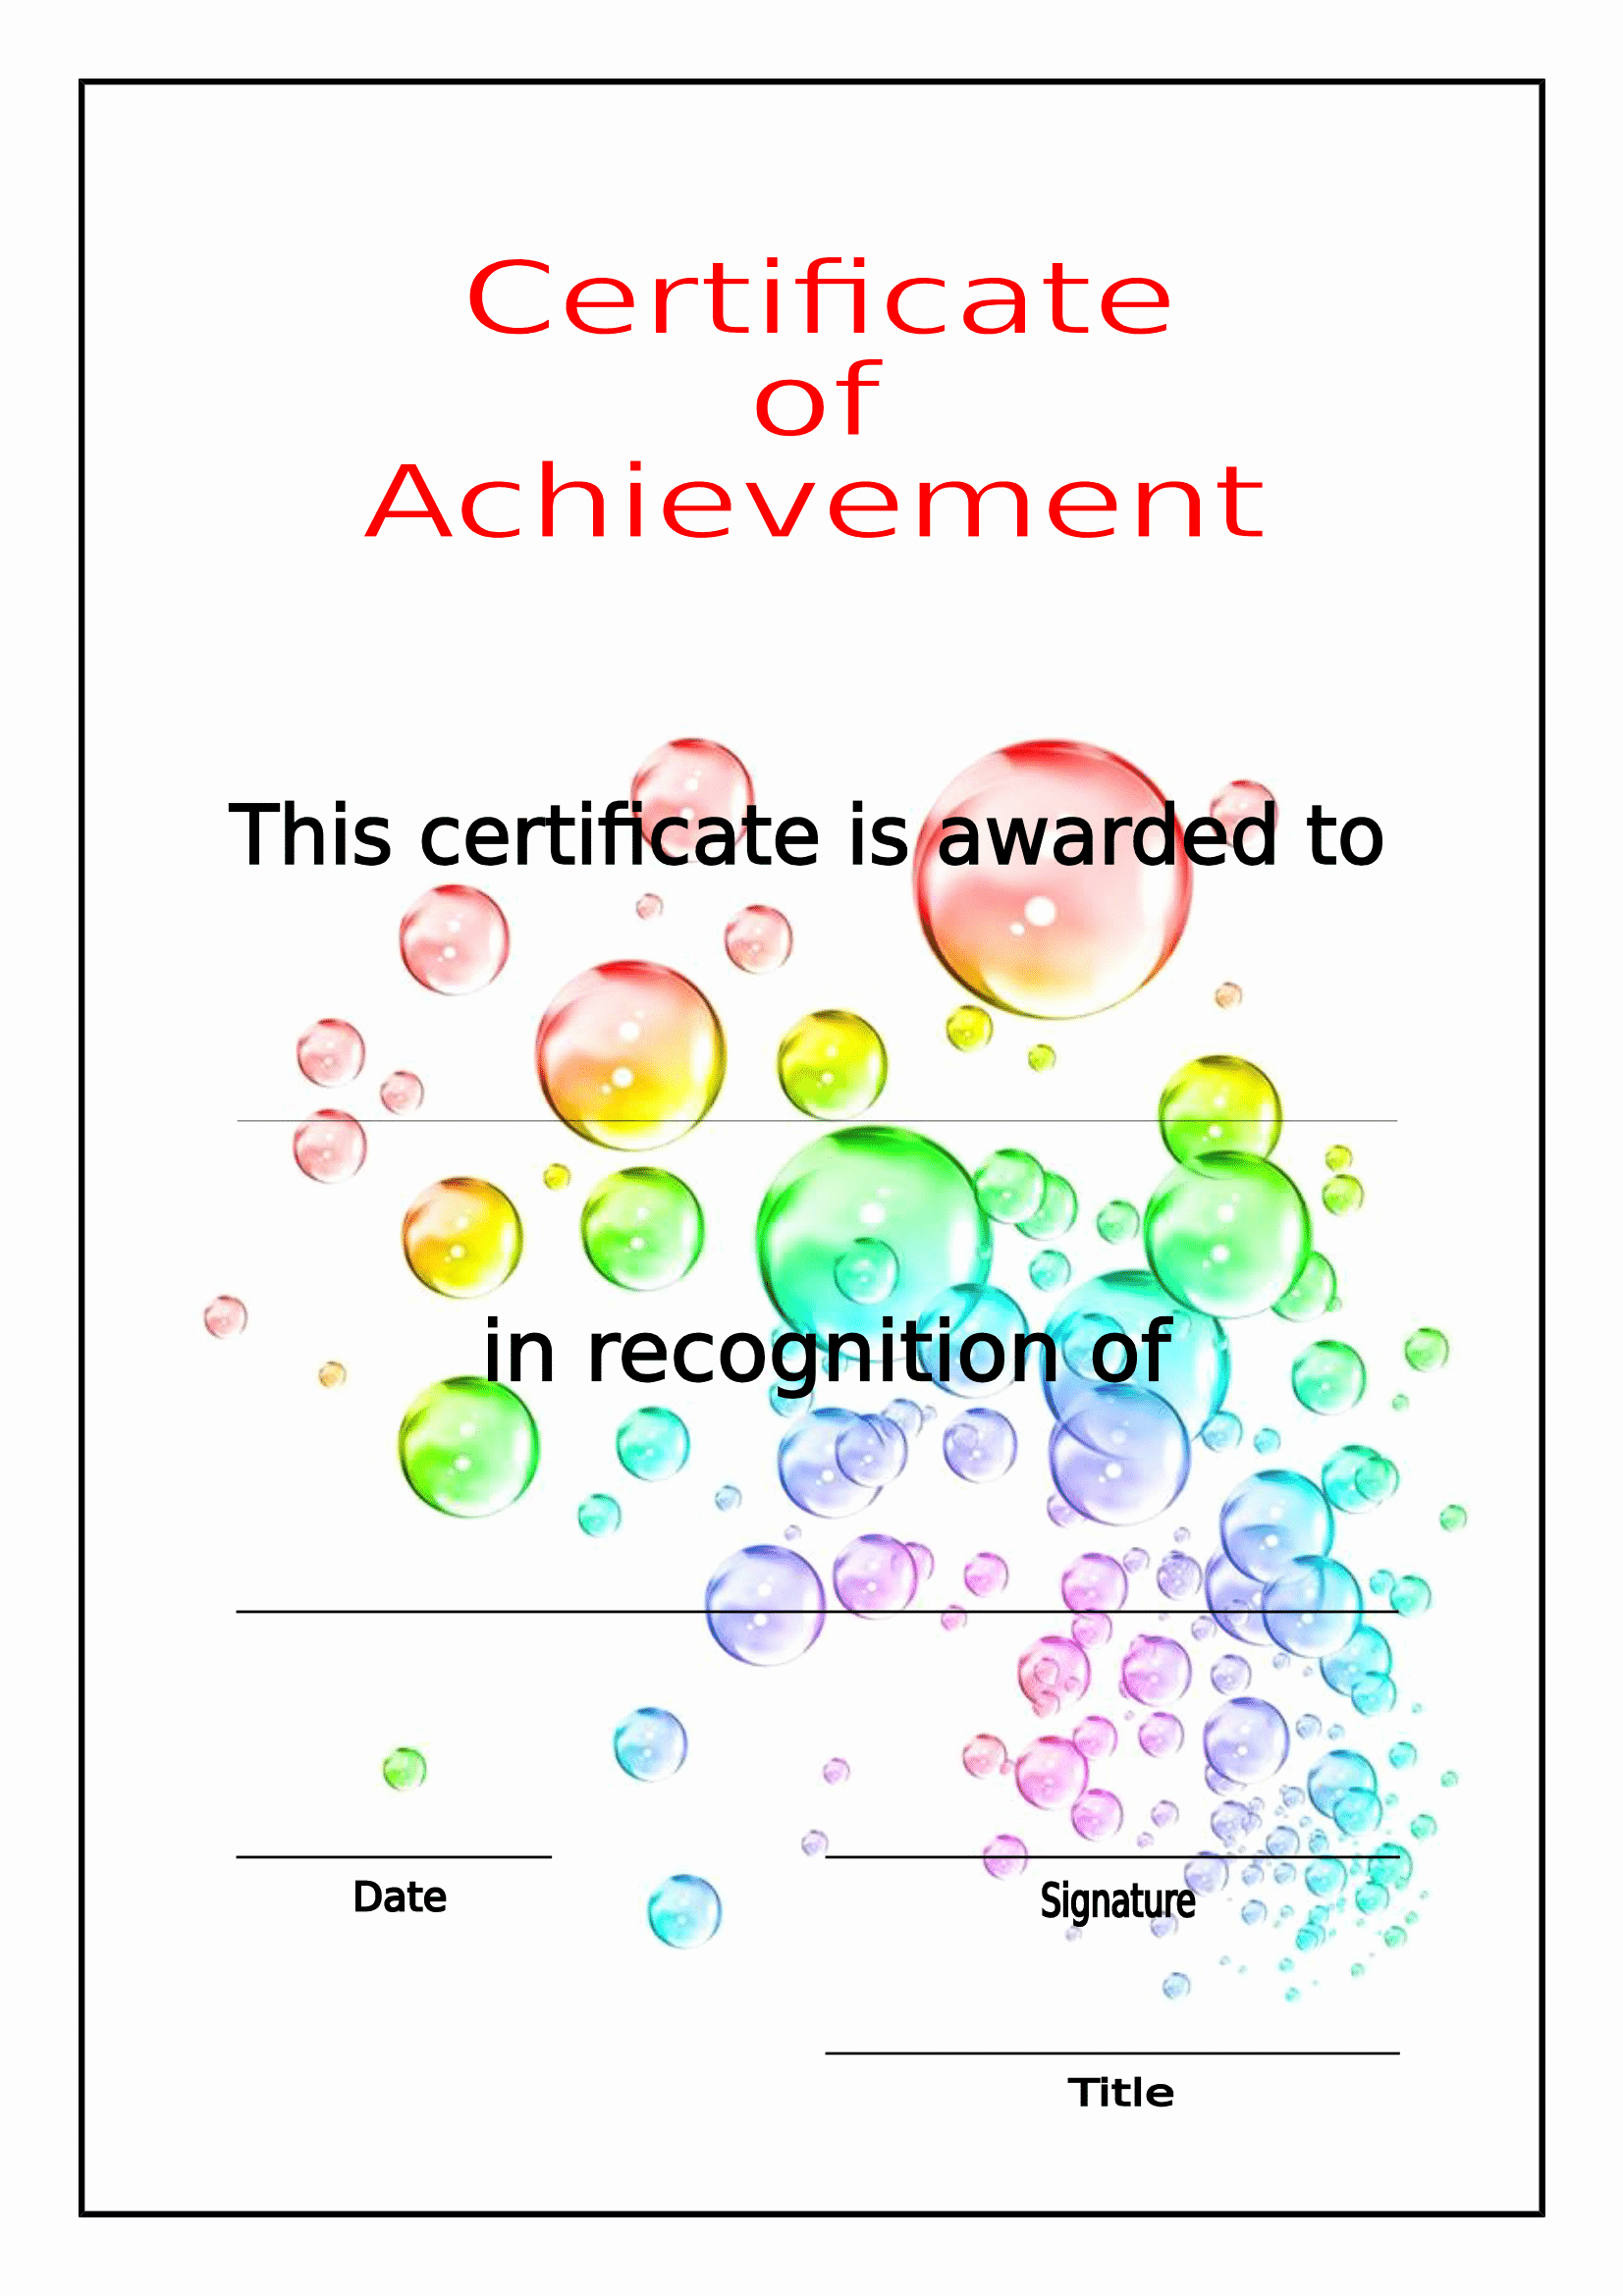 Certificate Of Accomplishment Template Free New Printable Certificate Of Achievement Free Download Template